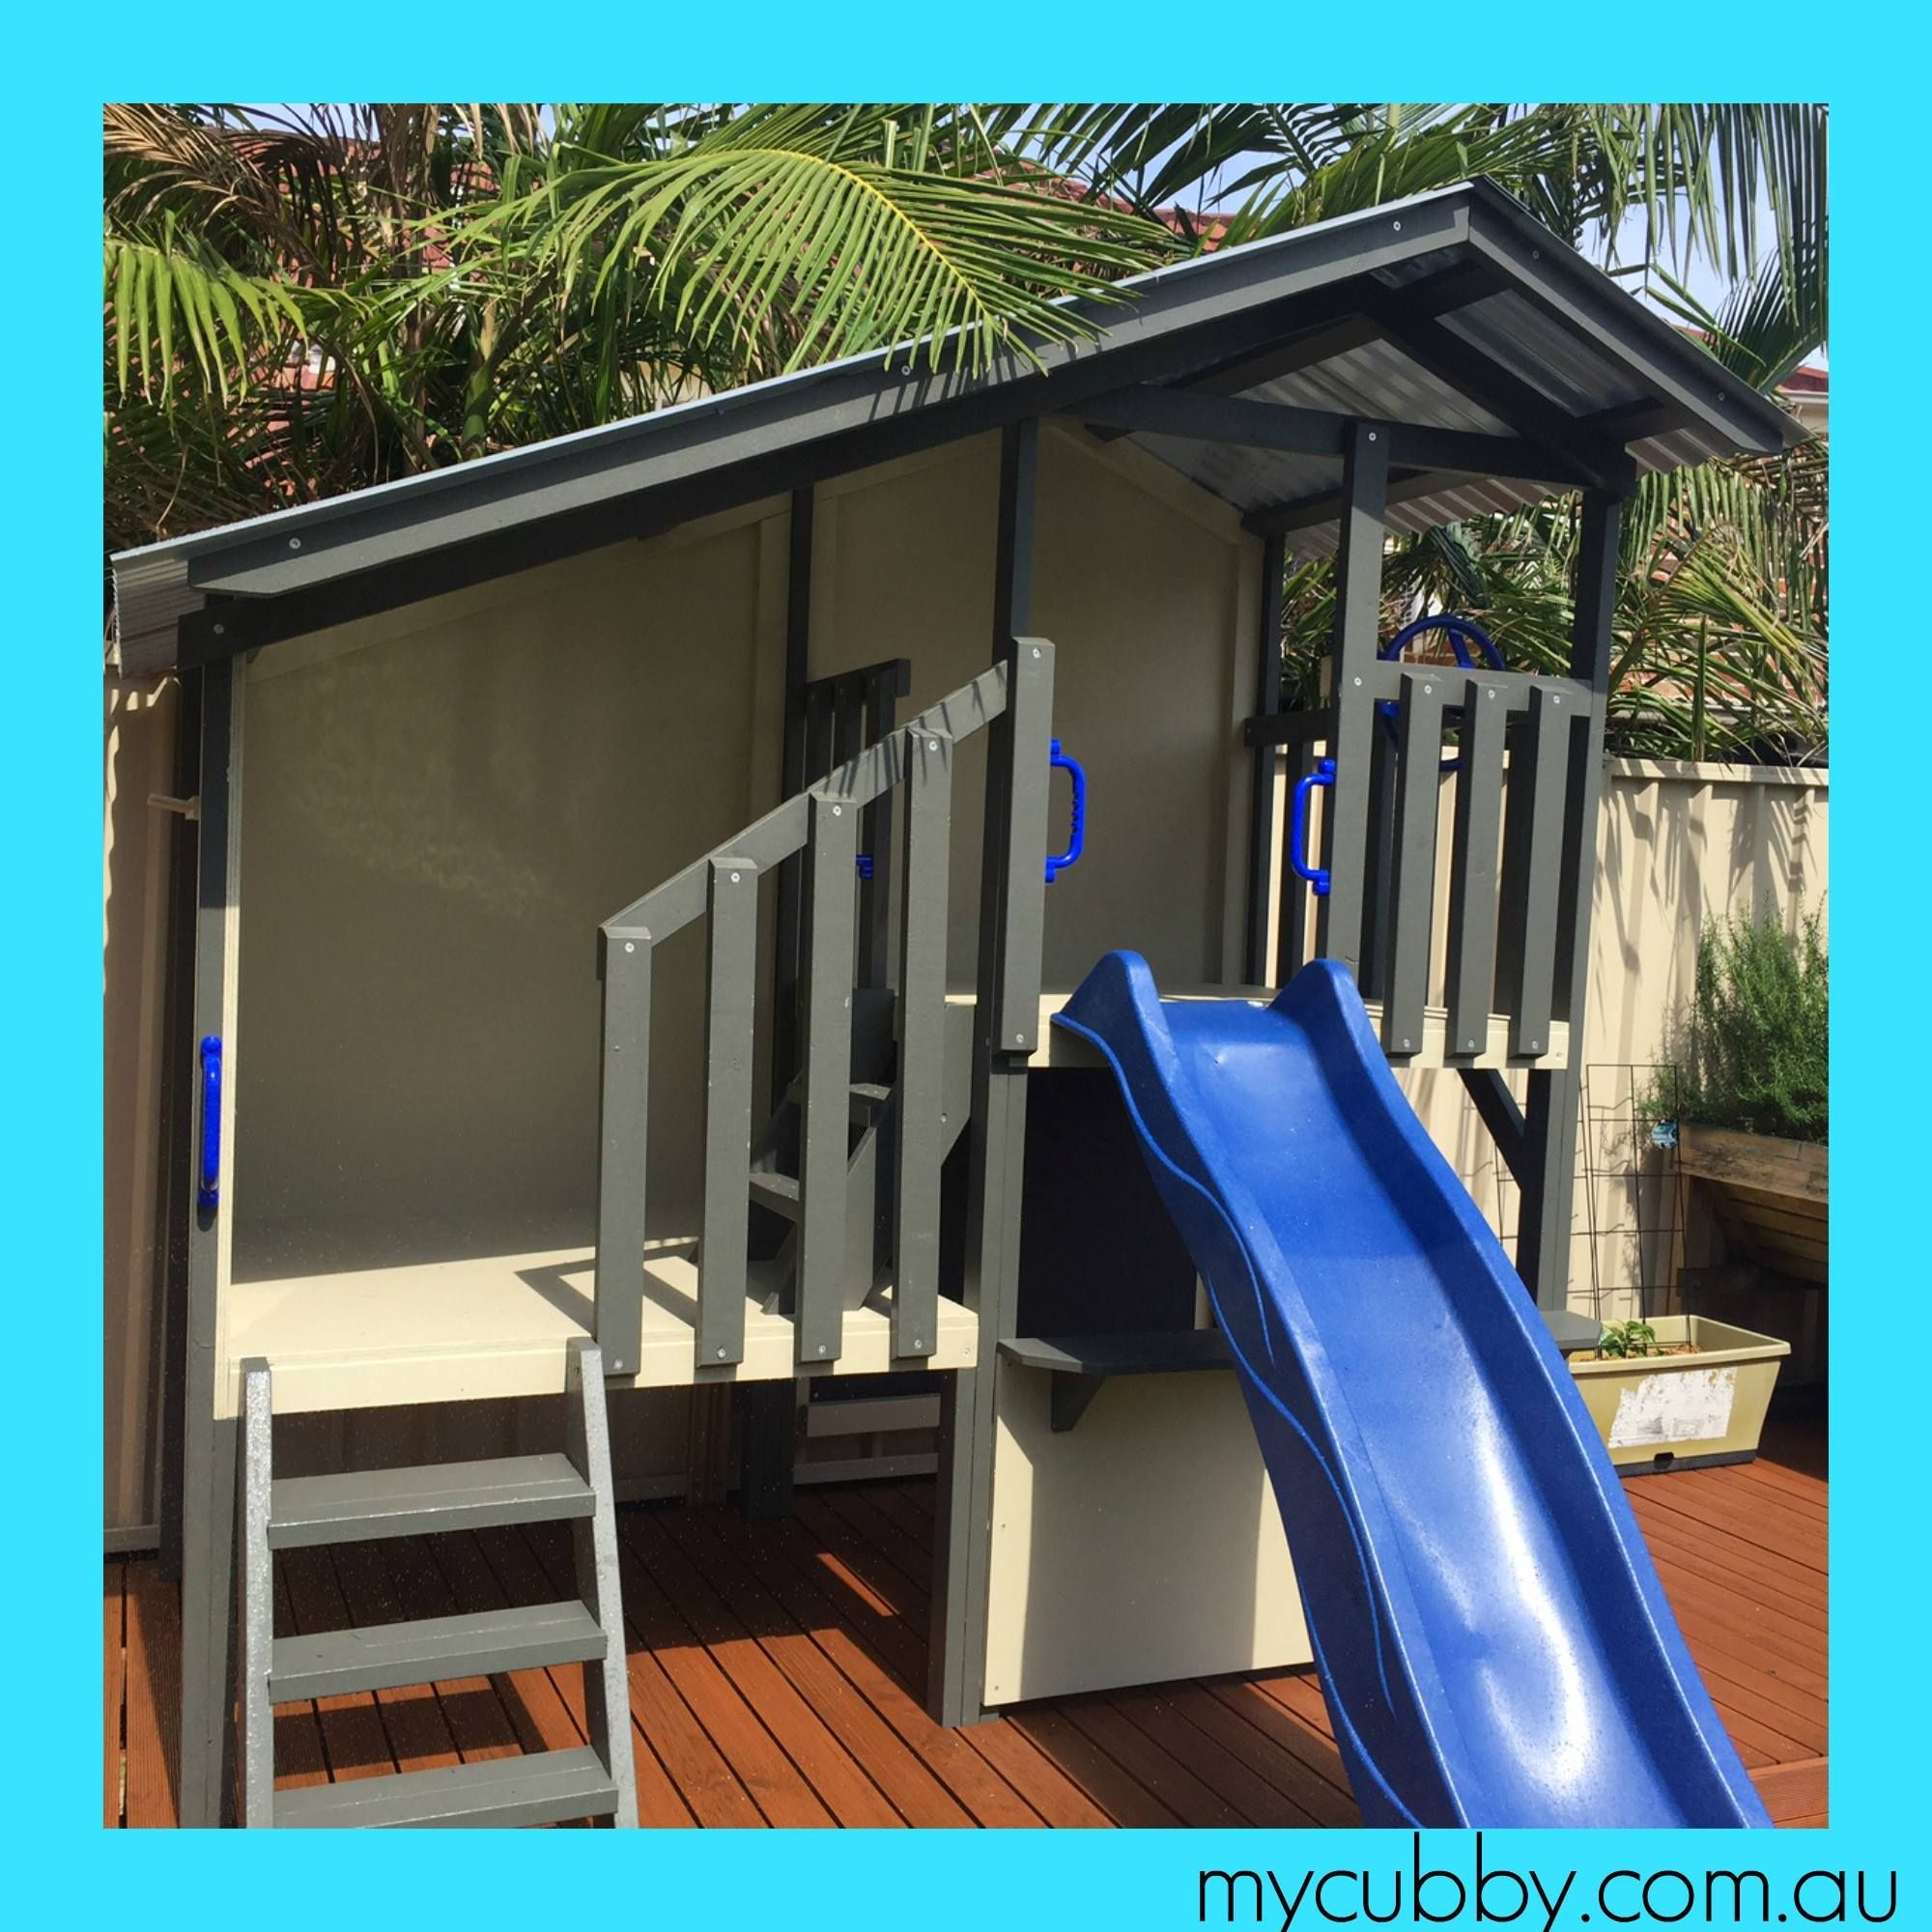 this duplex looks great on this decking area it fits in perfectly